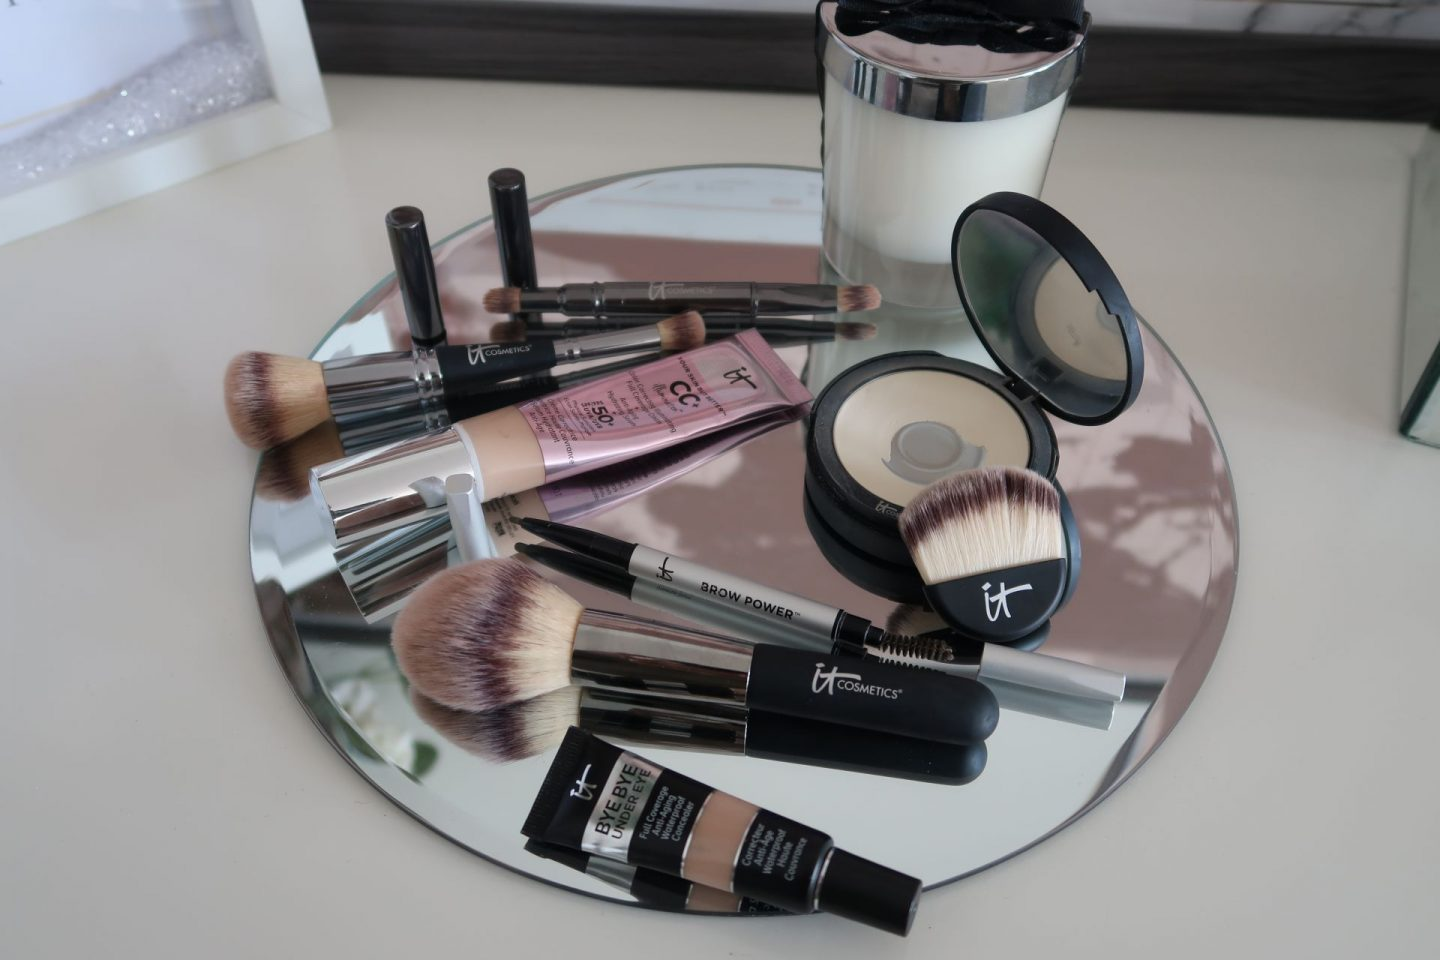 IT Cosmetics product review